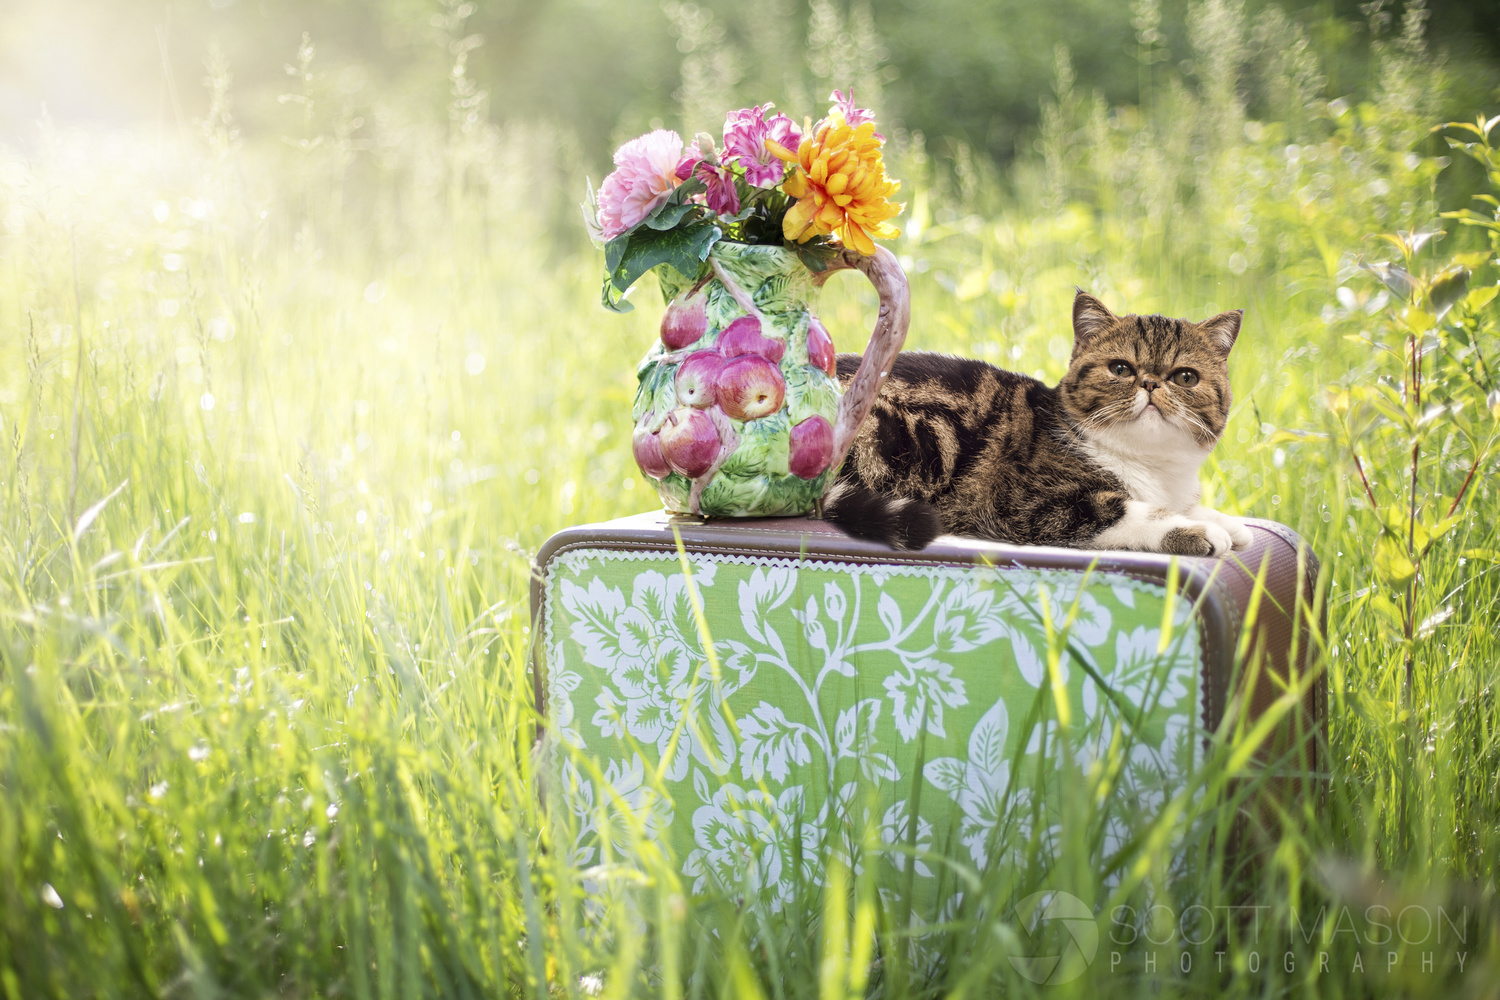 a cat sitting on a suitcase in a field